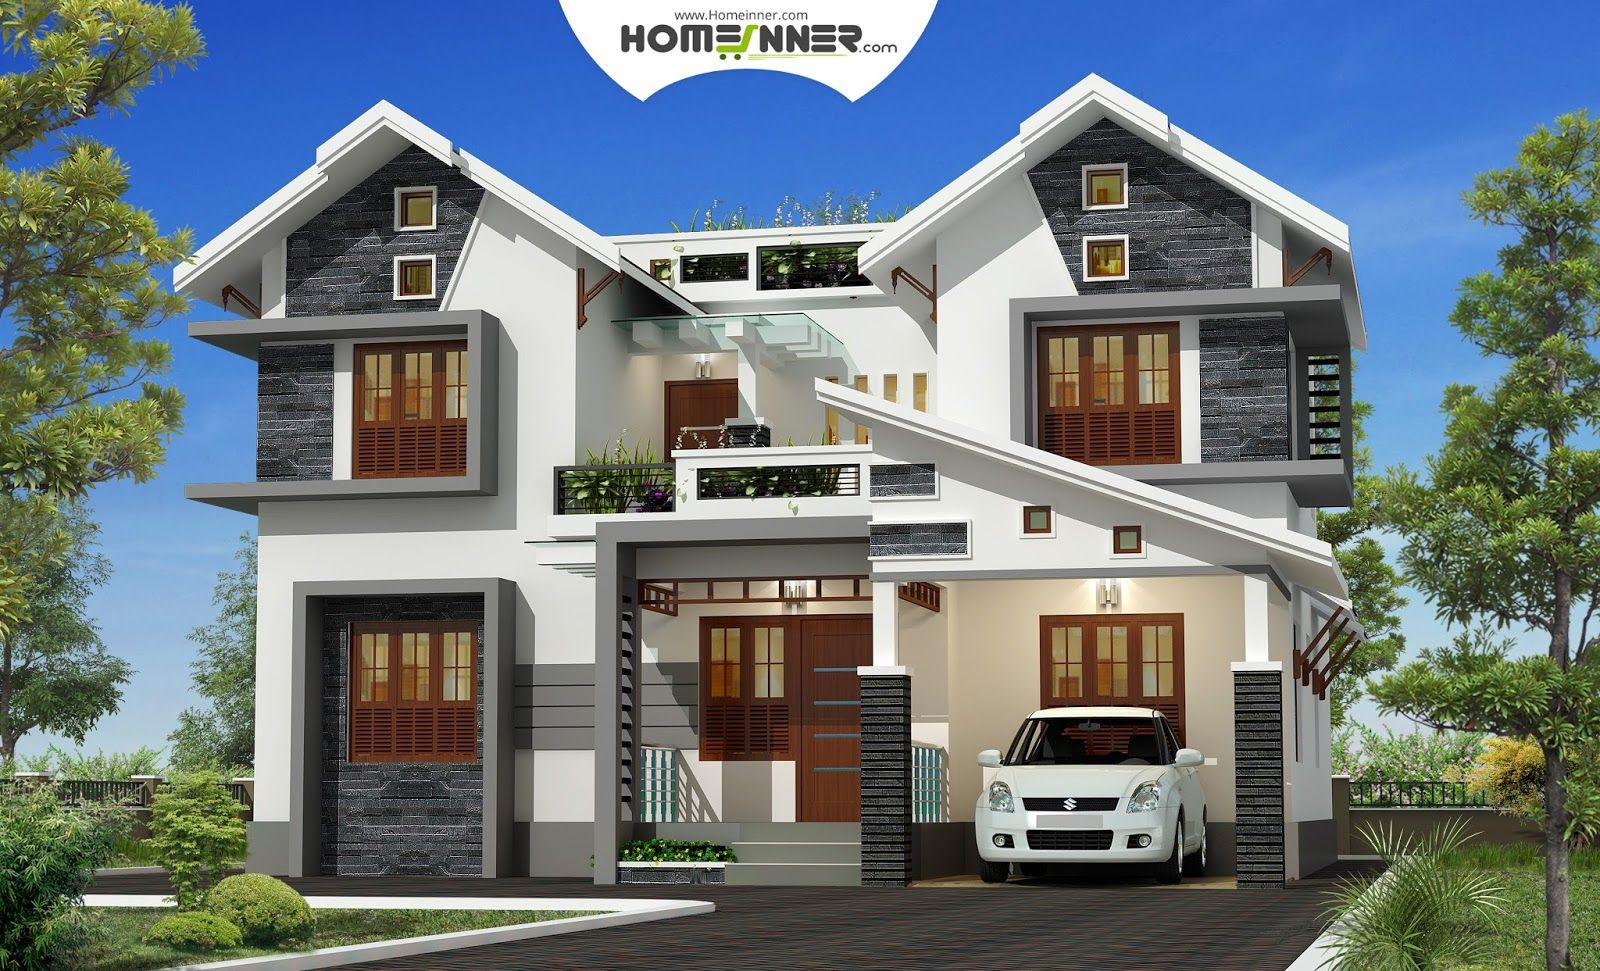 design indian home free house plans naksha designs Villa